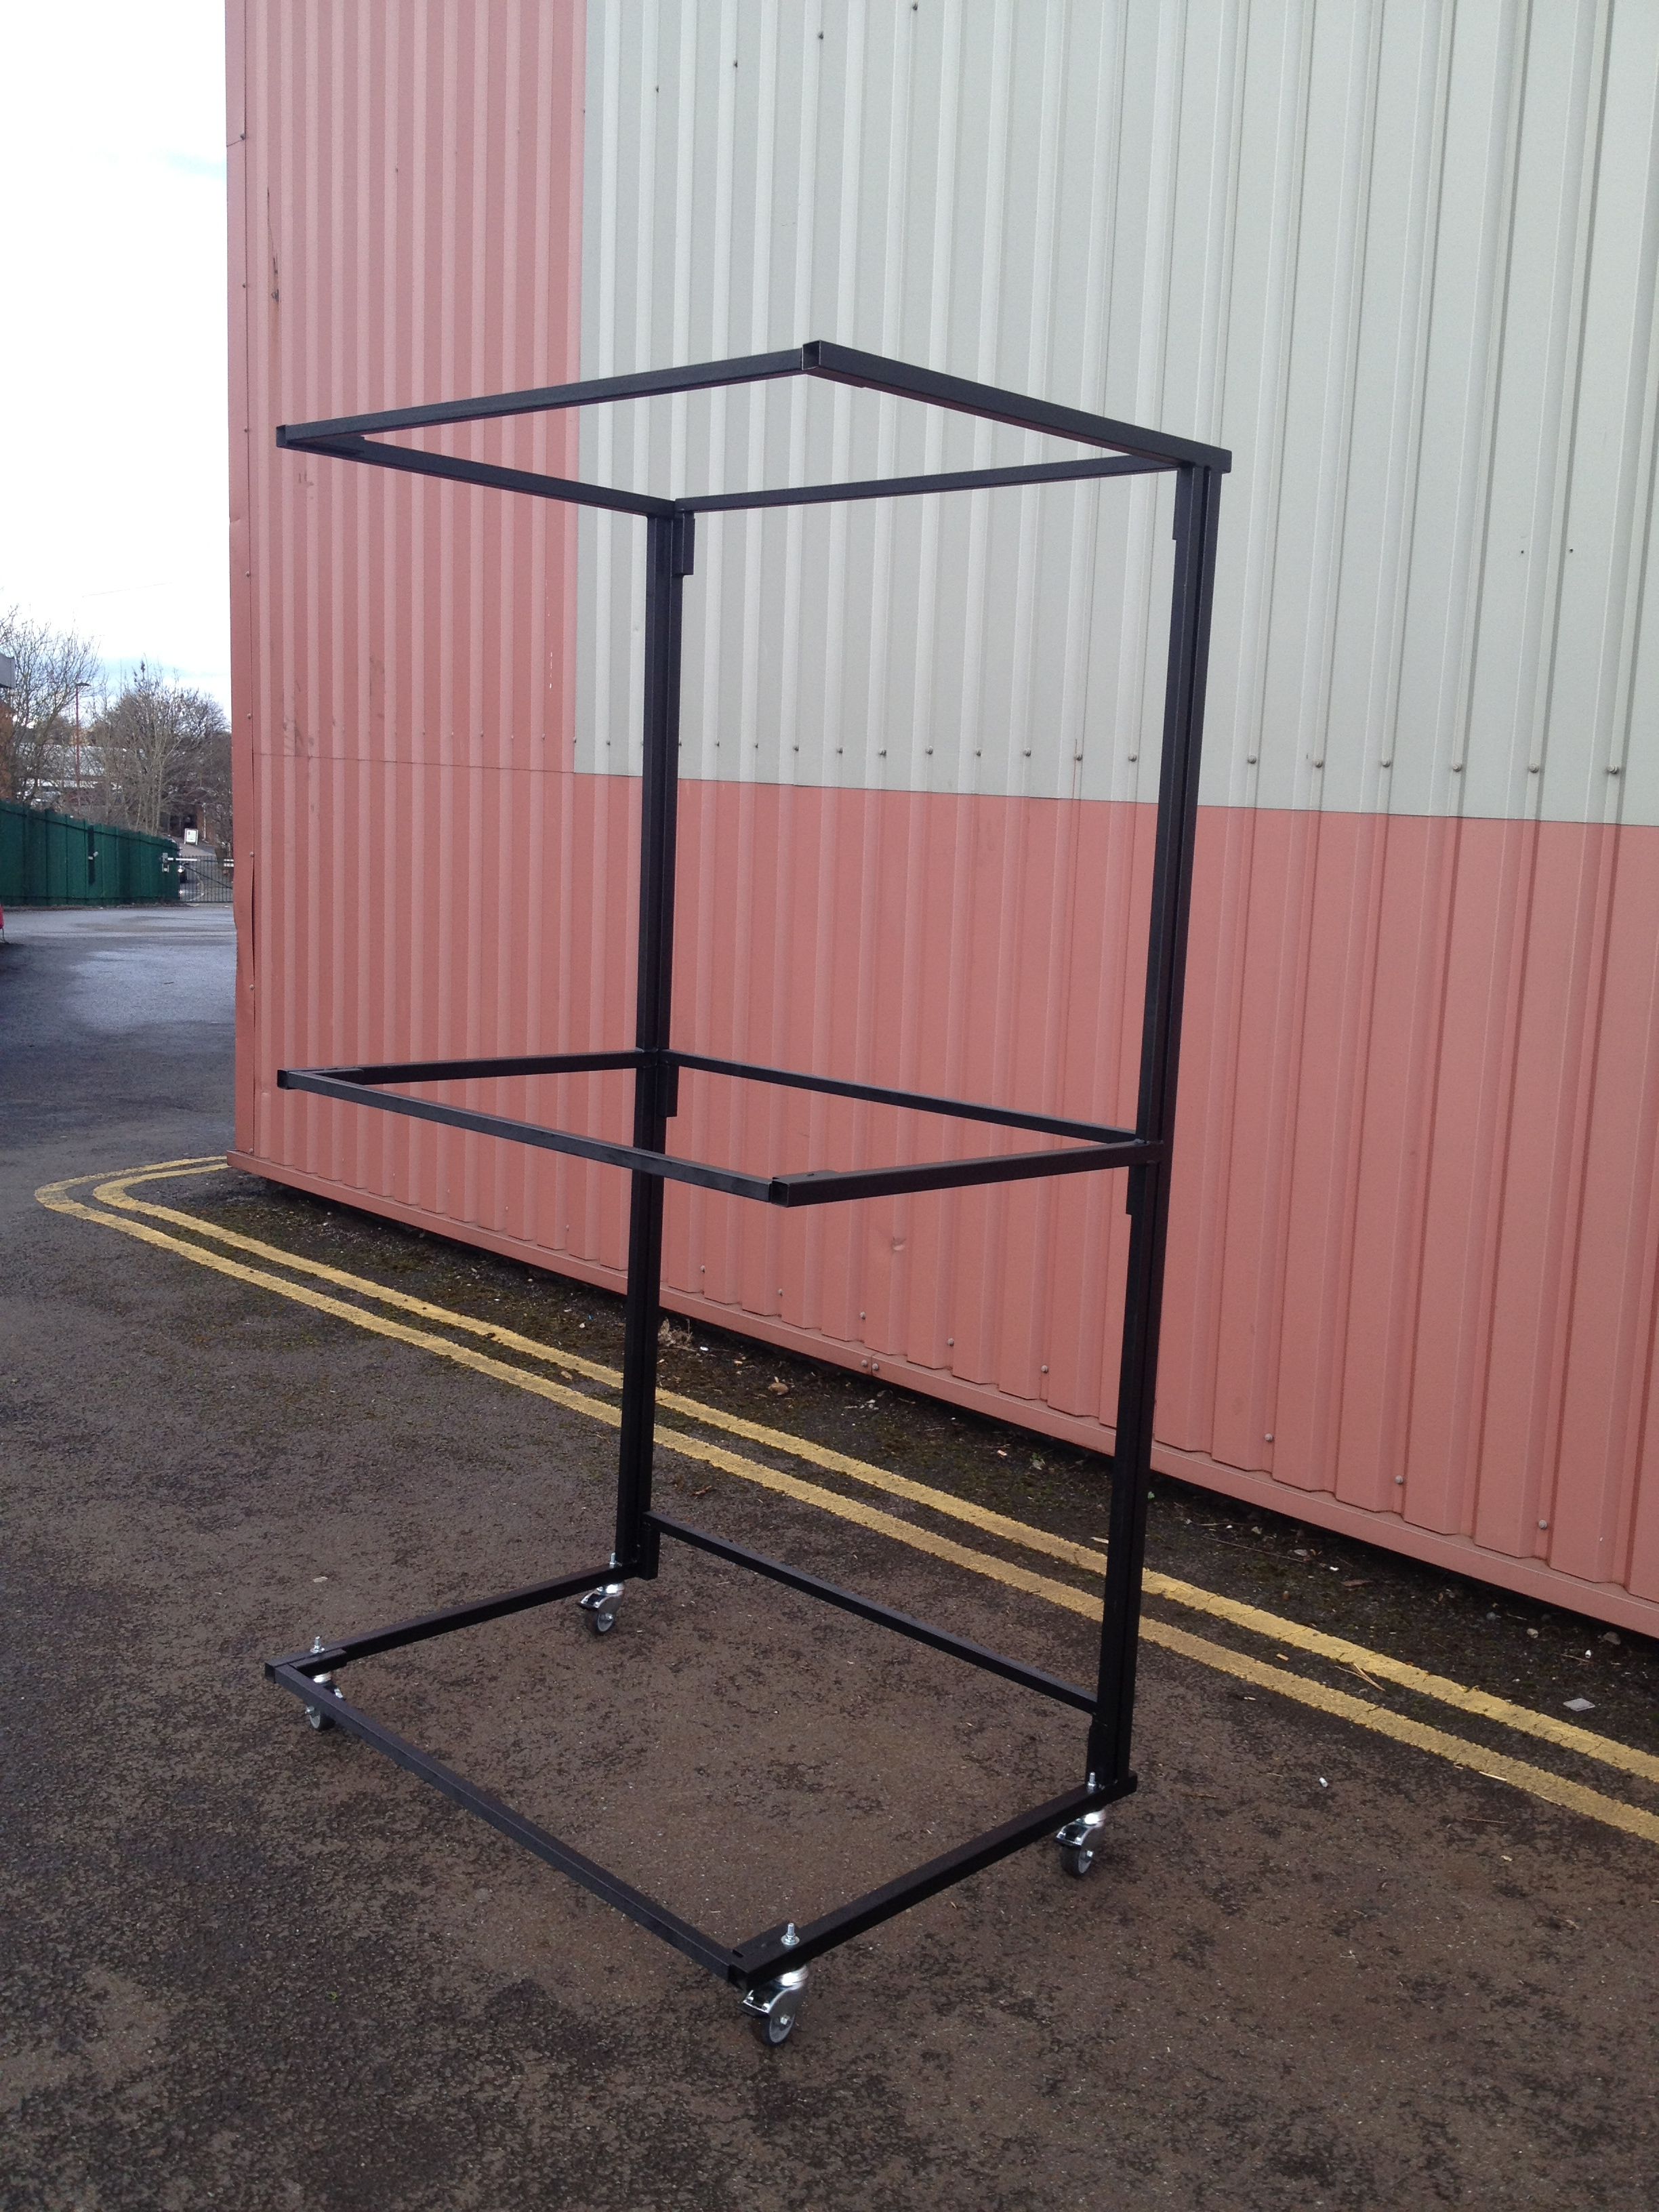 3 Tier Sofa Display Stand